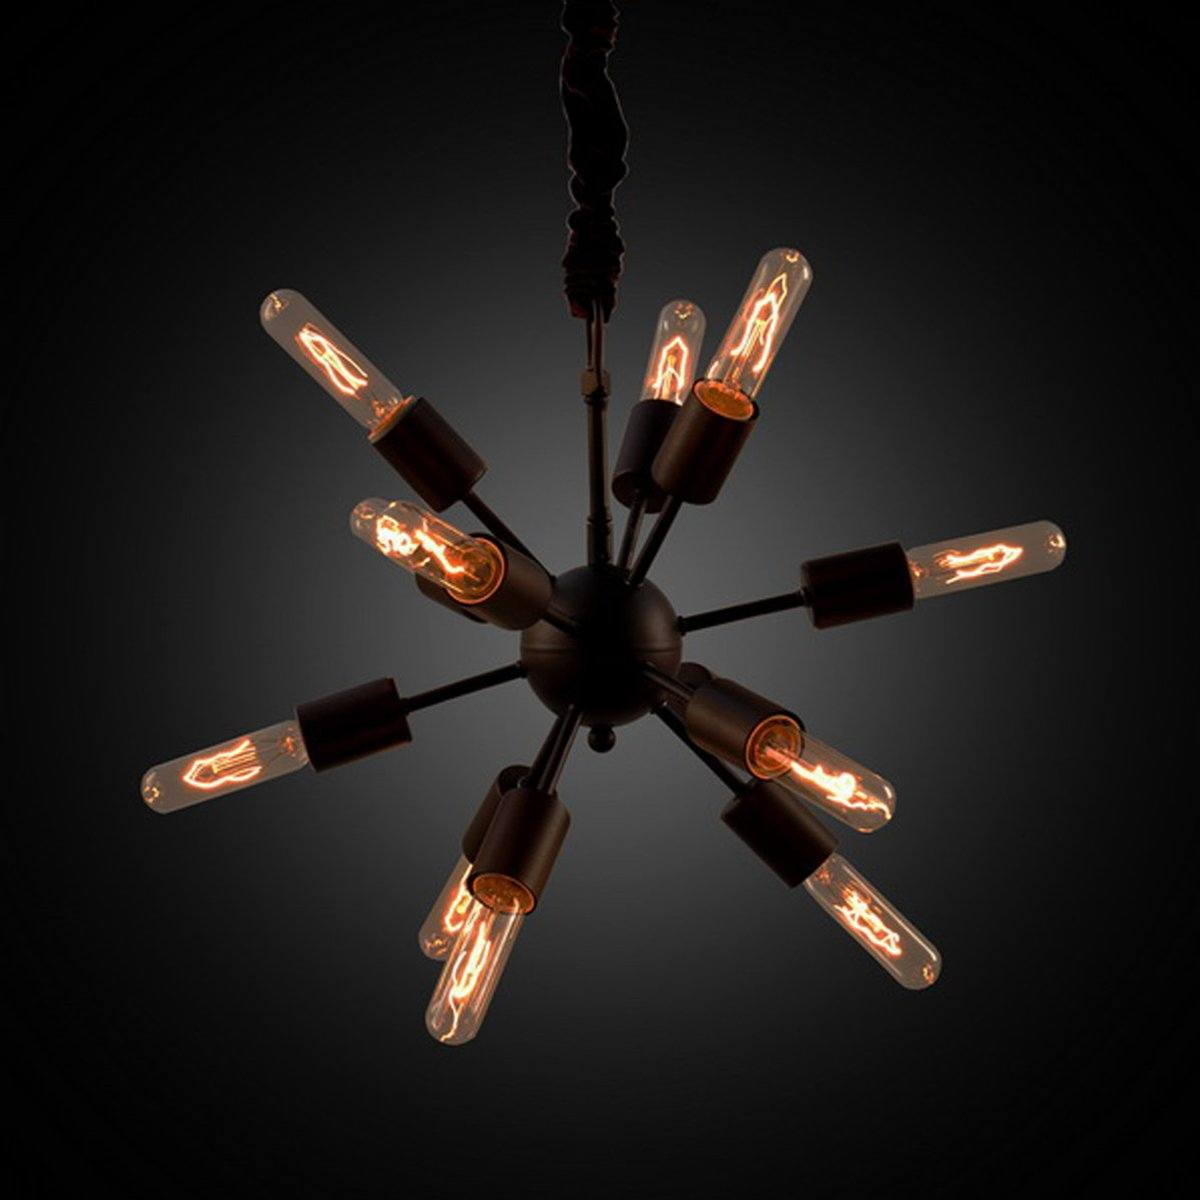 ORION SMALL CHANDELIER WITH LAMP BULB Lighting LH